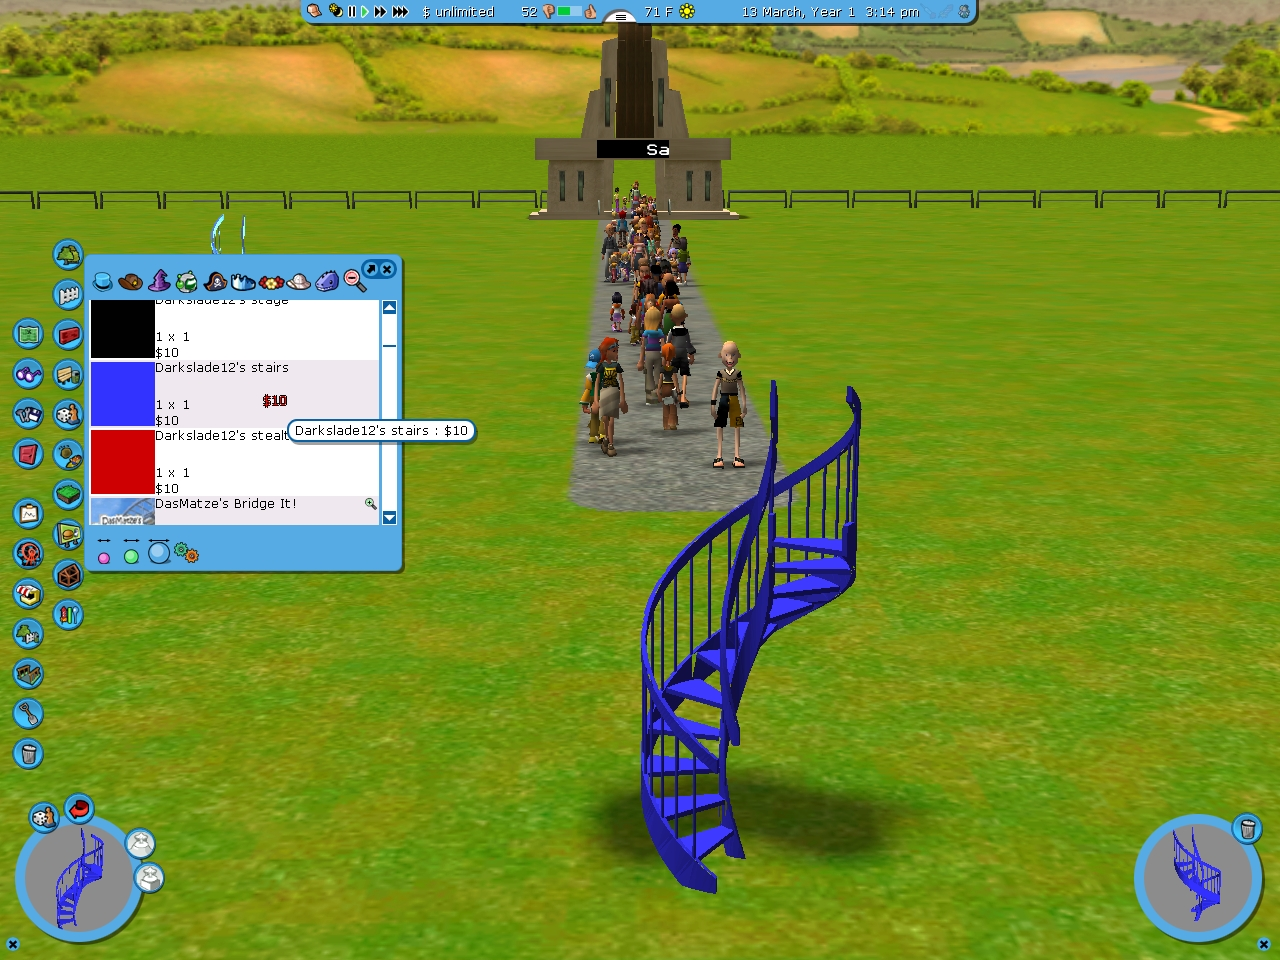 Roller coaster tycoon nude patch nudes clip